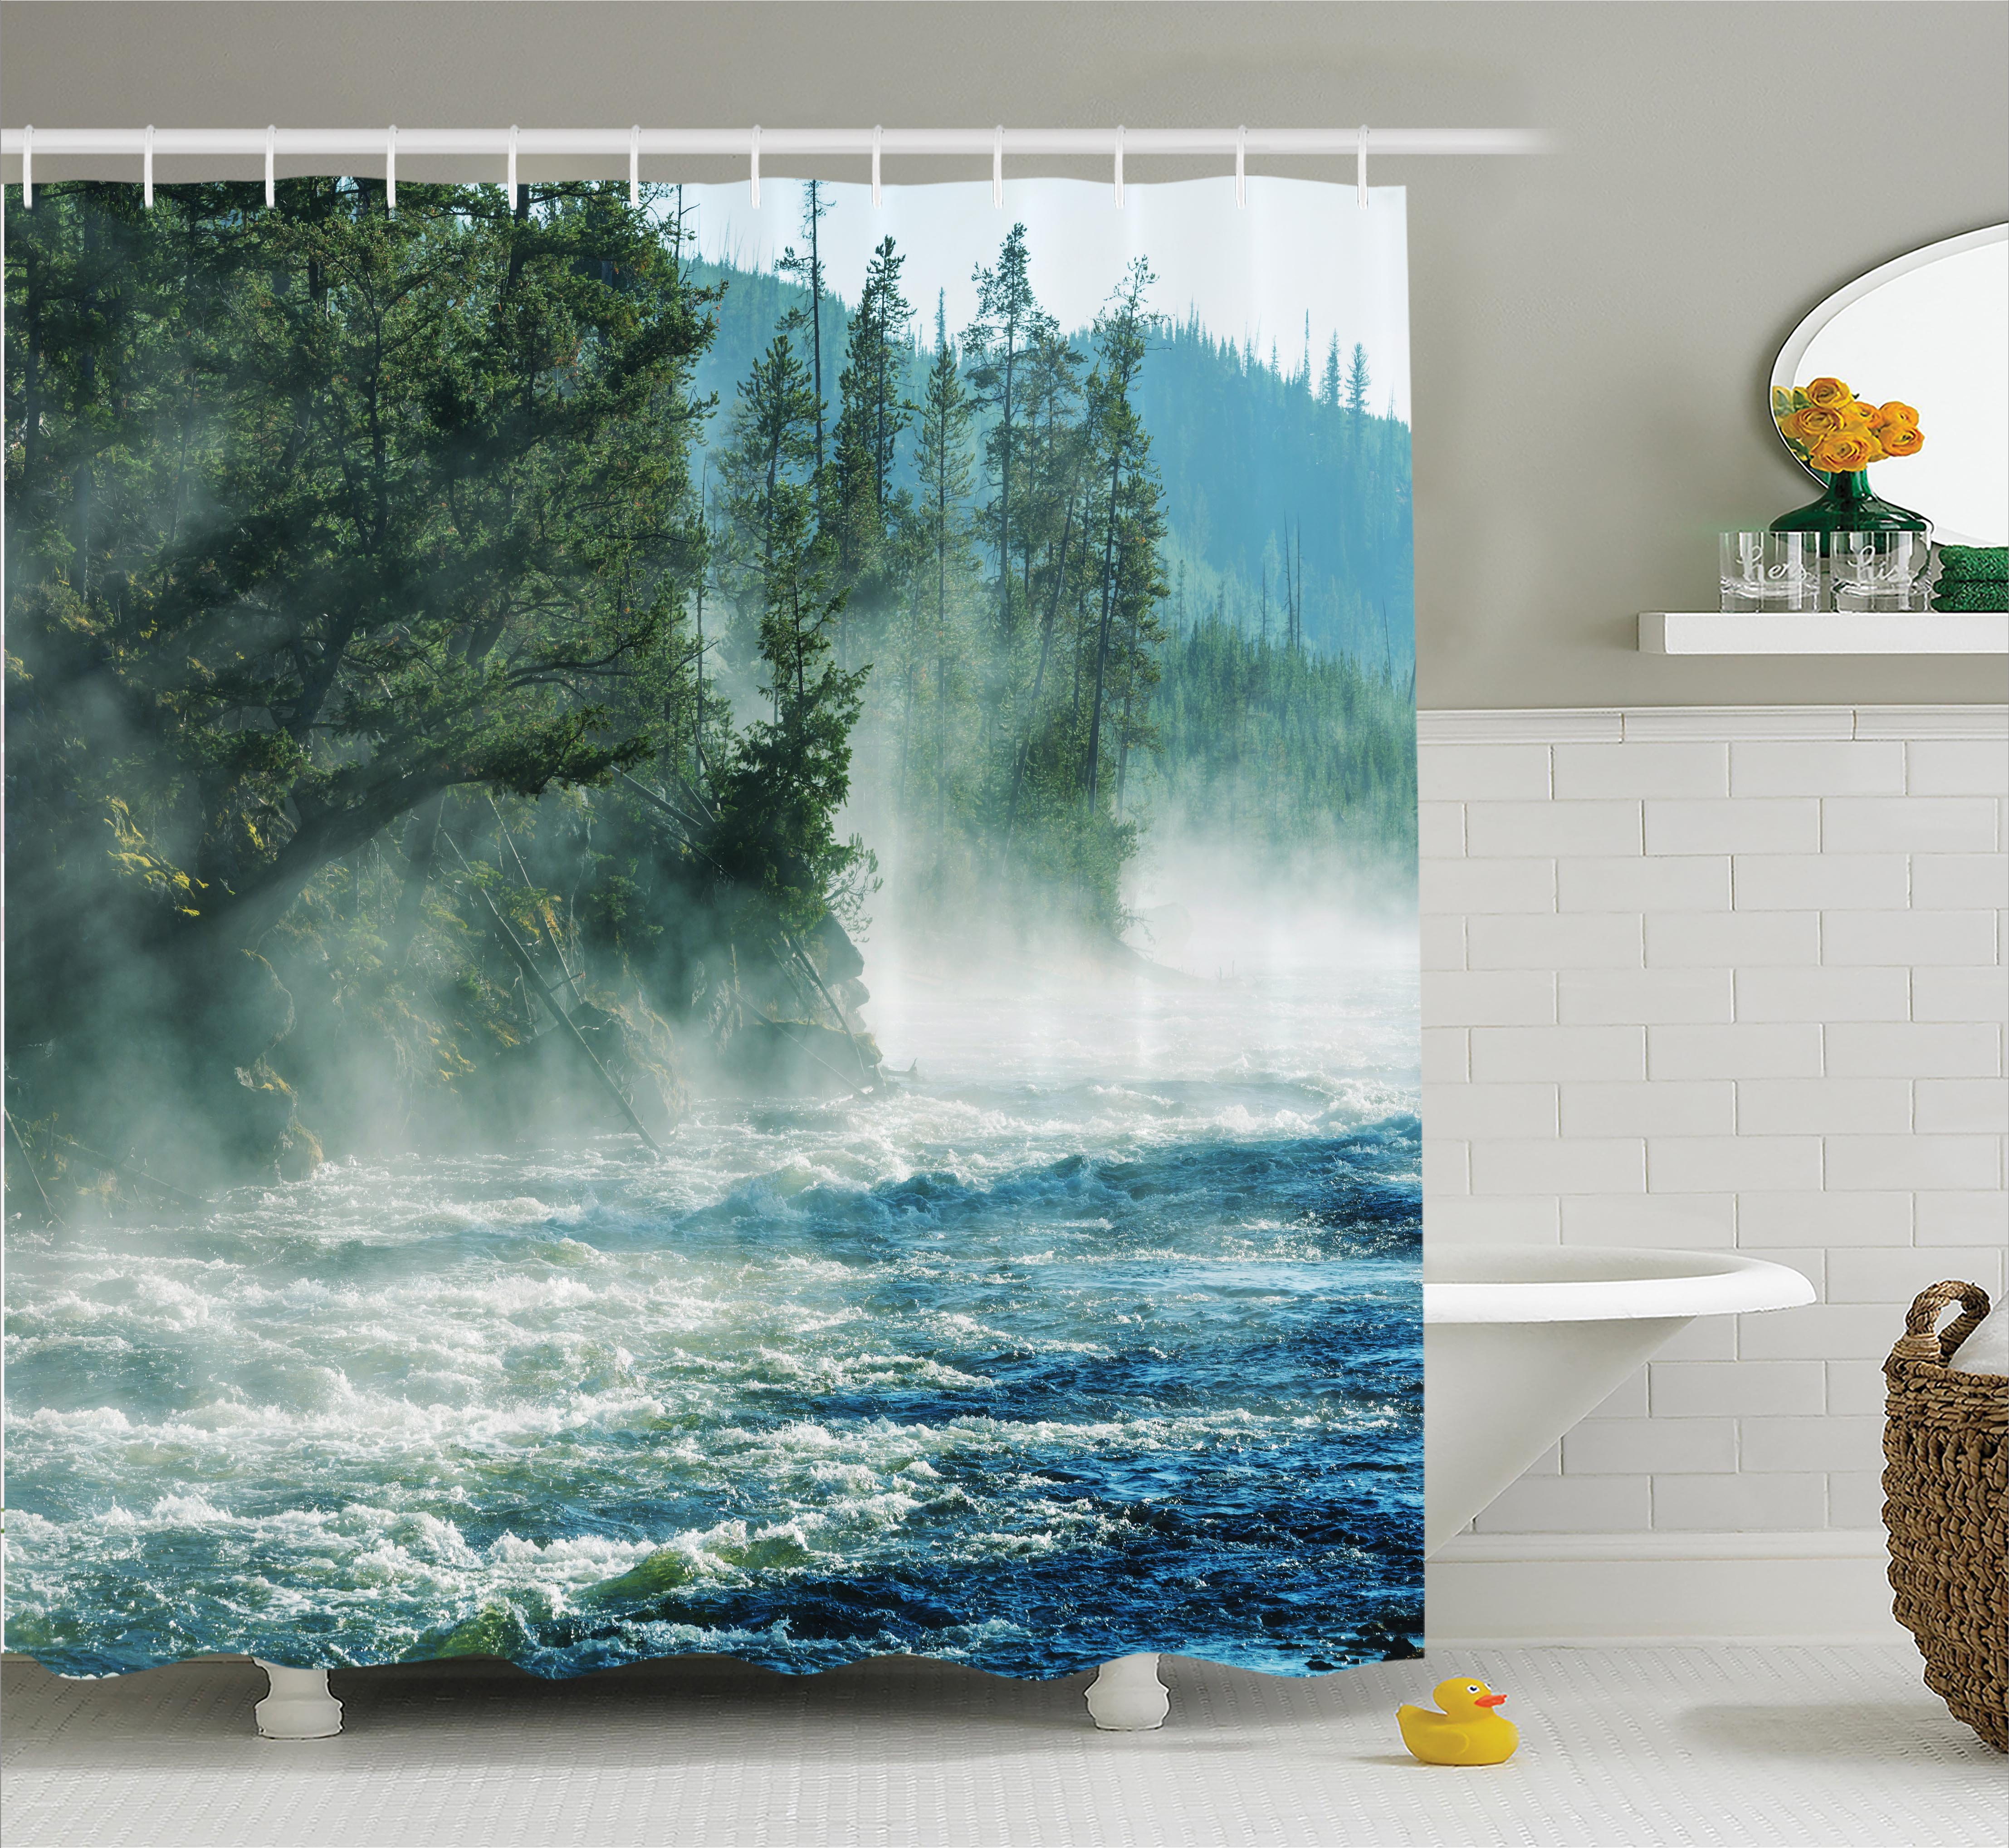 Yellowstone Decor Shower Curtain, Fog on River Alpine Trees by the Bank Wilderness Waterscape Picture Art, Fabric Bathroom Set with Hooks, 69W X 75L Inches Long, Green Blue, by Ambesonne